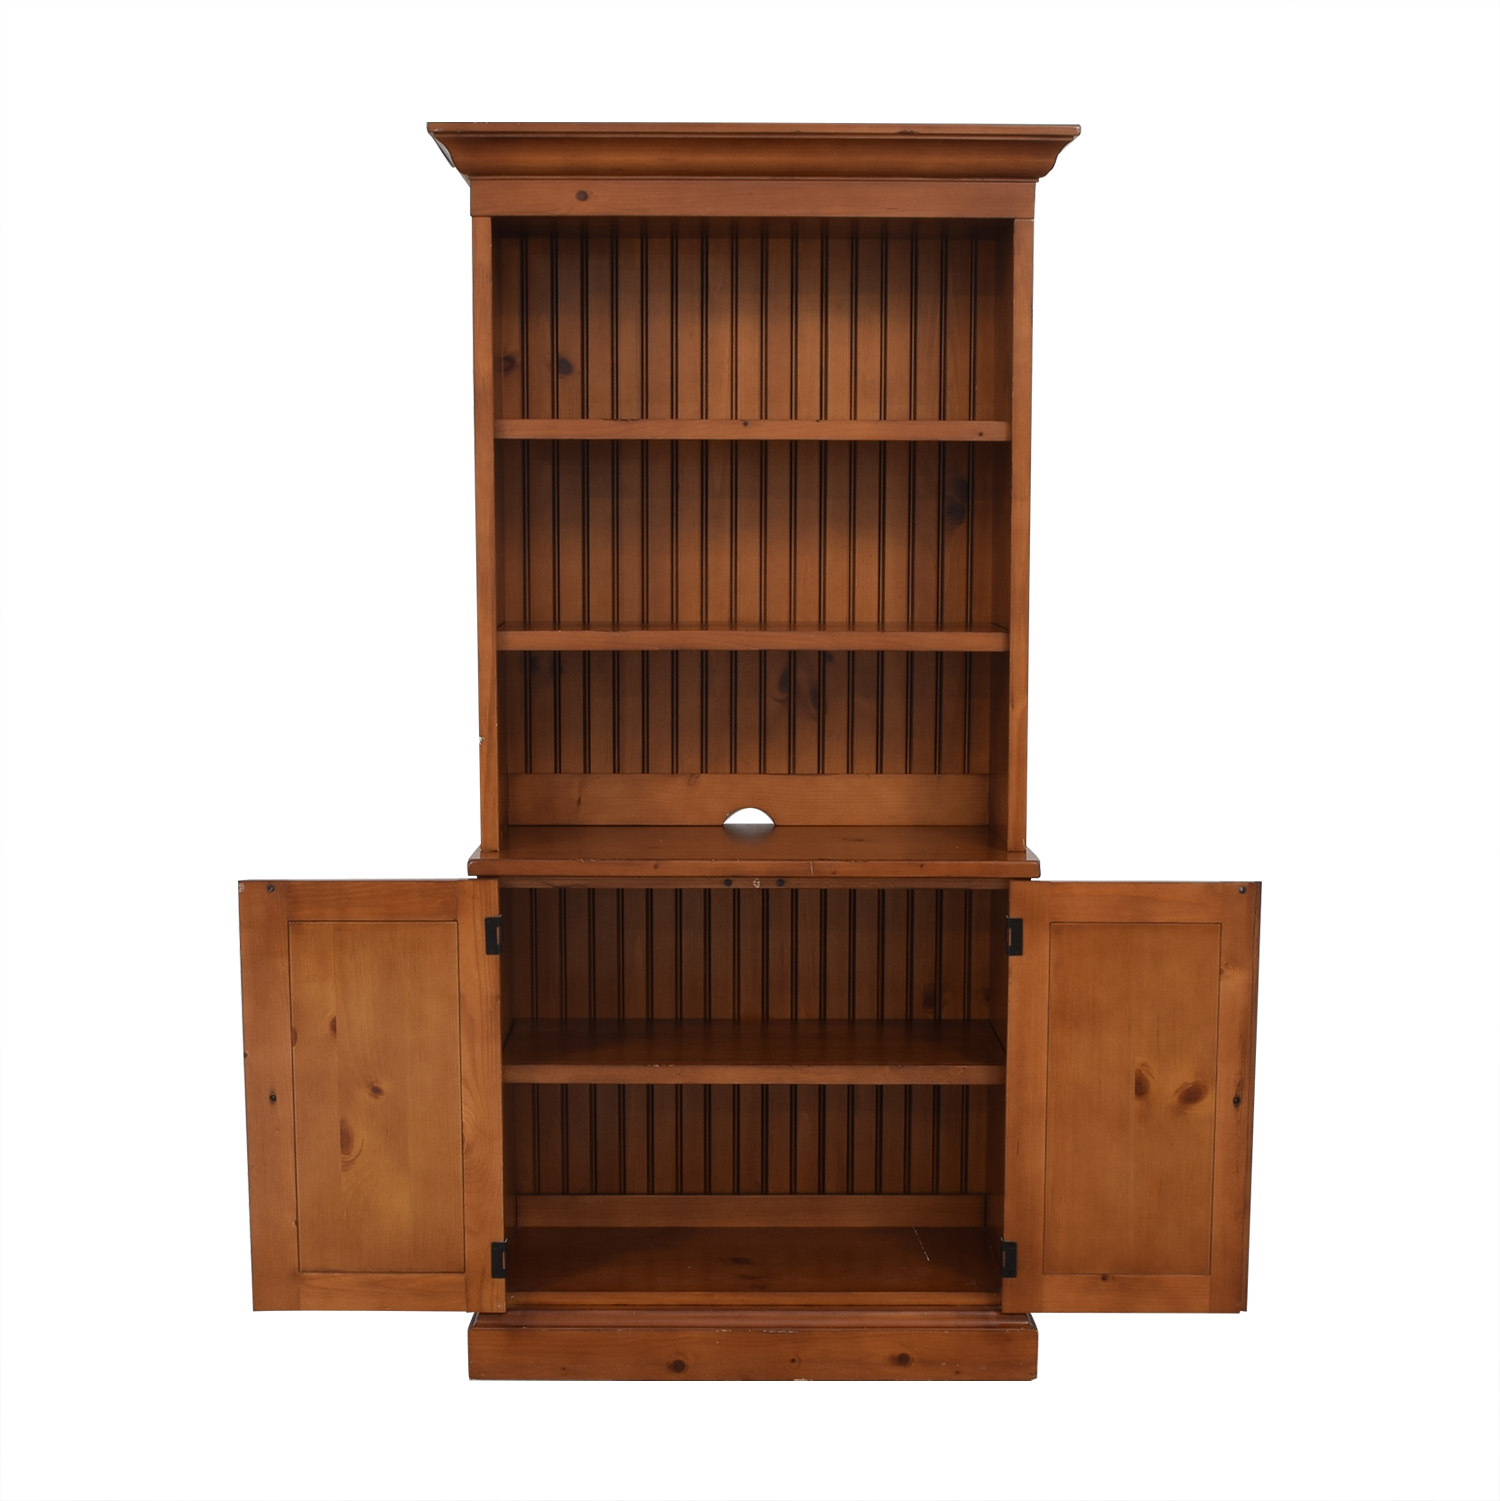 Pottery Barn Kids Pottery Barn Kids Cabinet and Hutch coupon